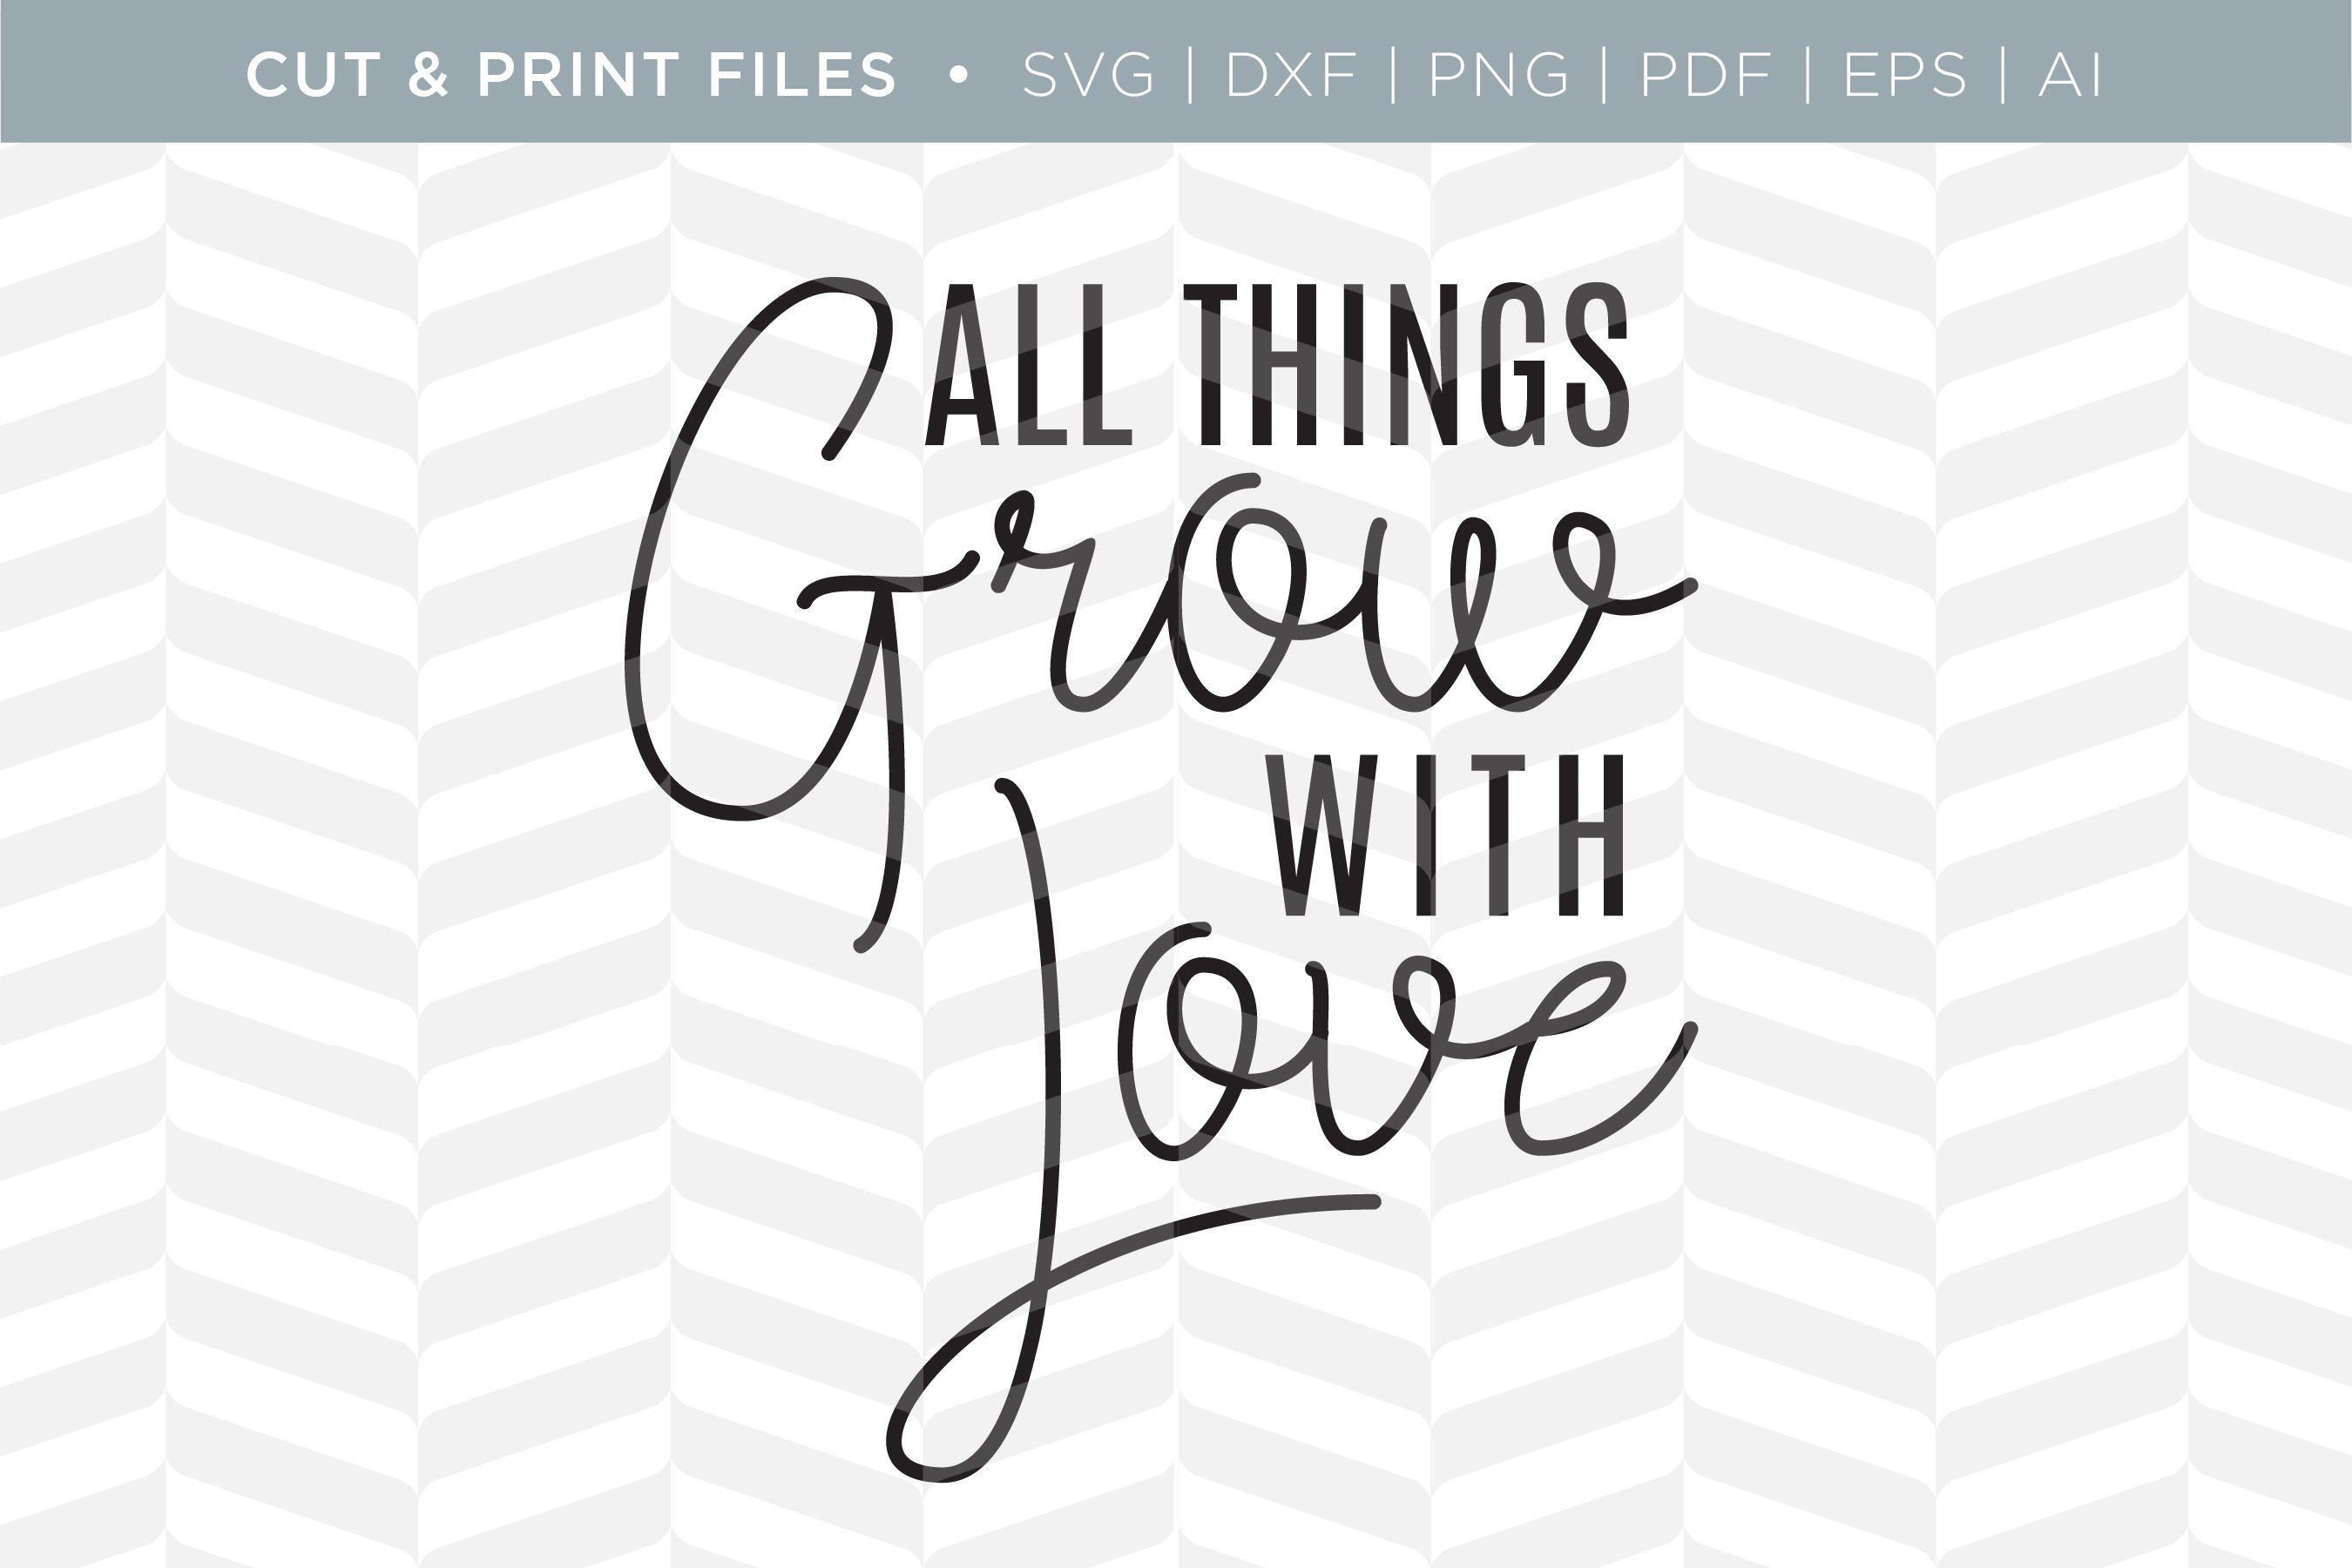 Grow With Love Svg Cut Print Files Creative Daddy